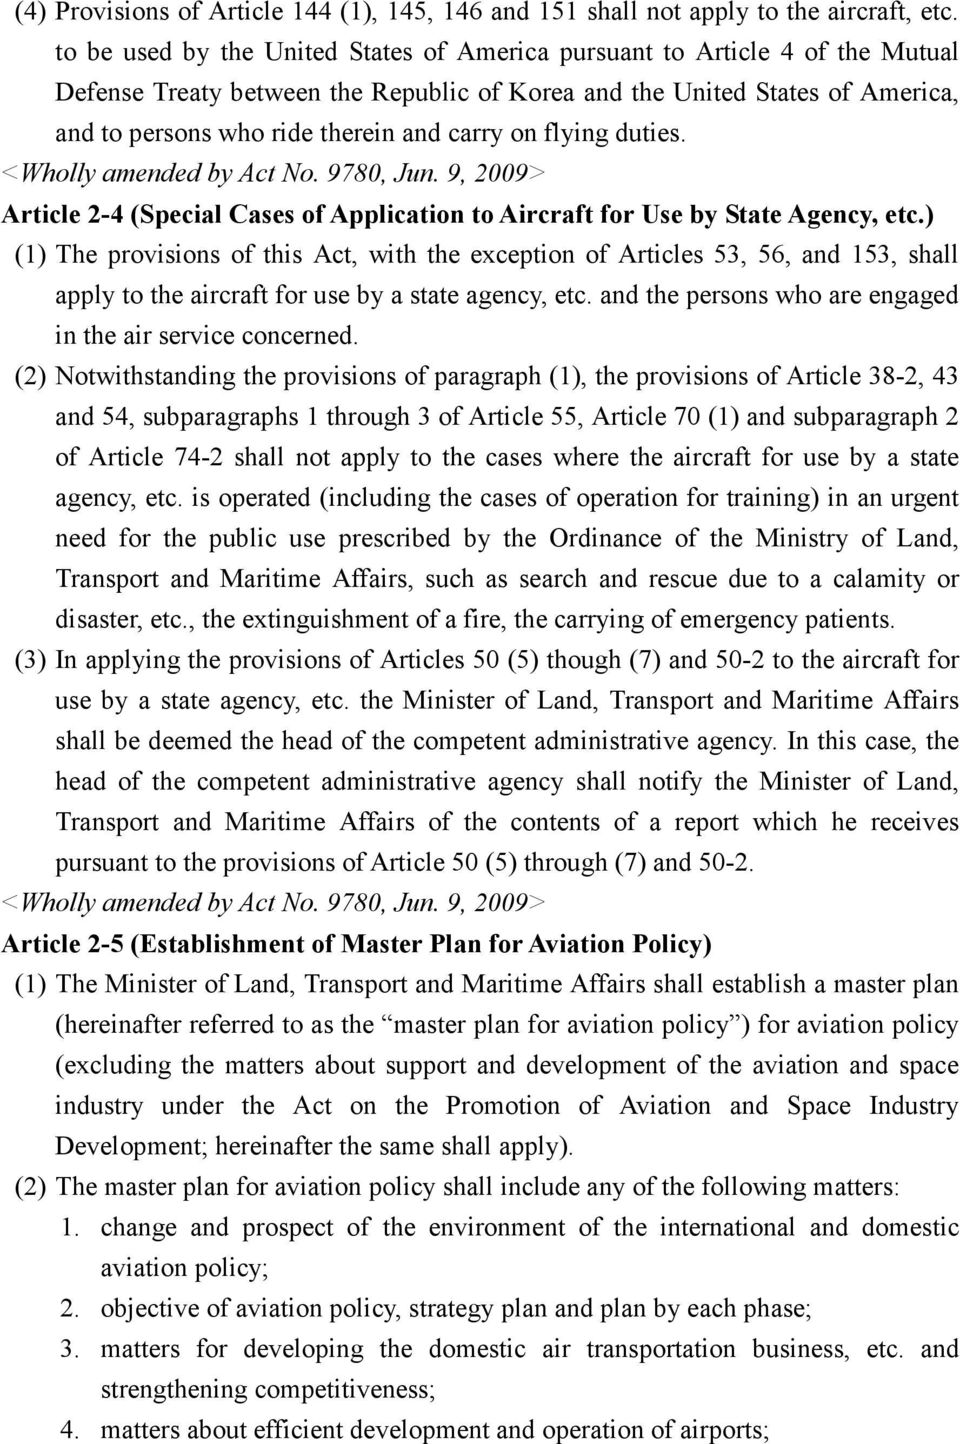 on flying duties. Article 2-4 (Special Cases of Application to Aircraft for Use by State Agency, etc.